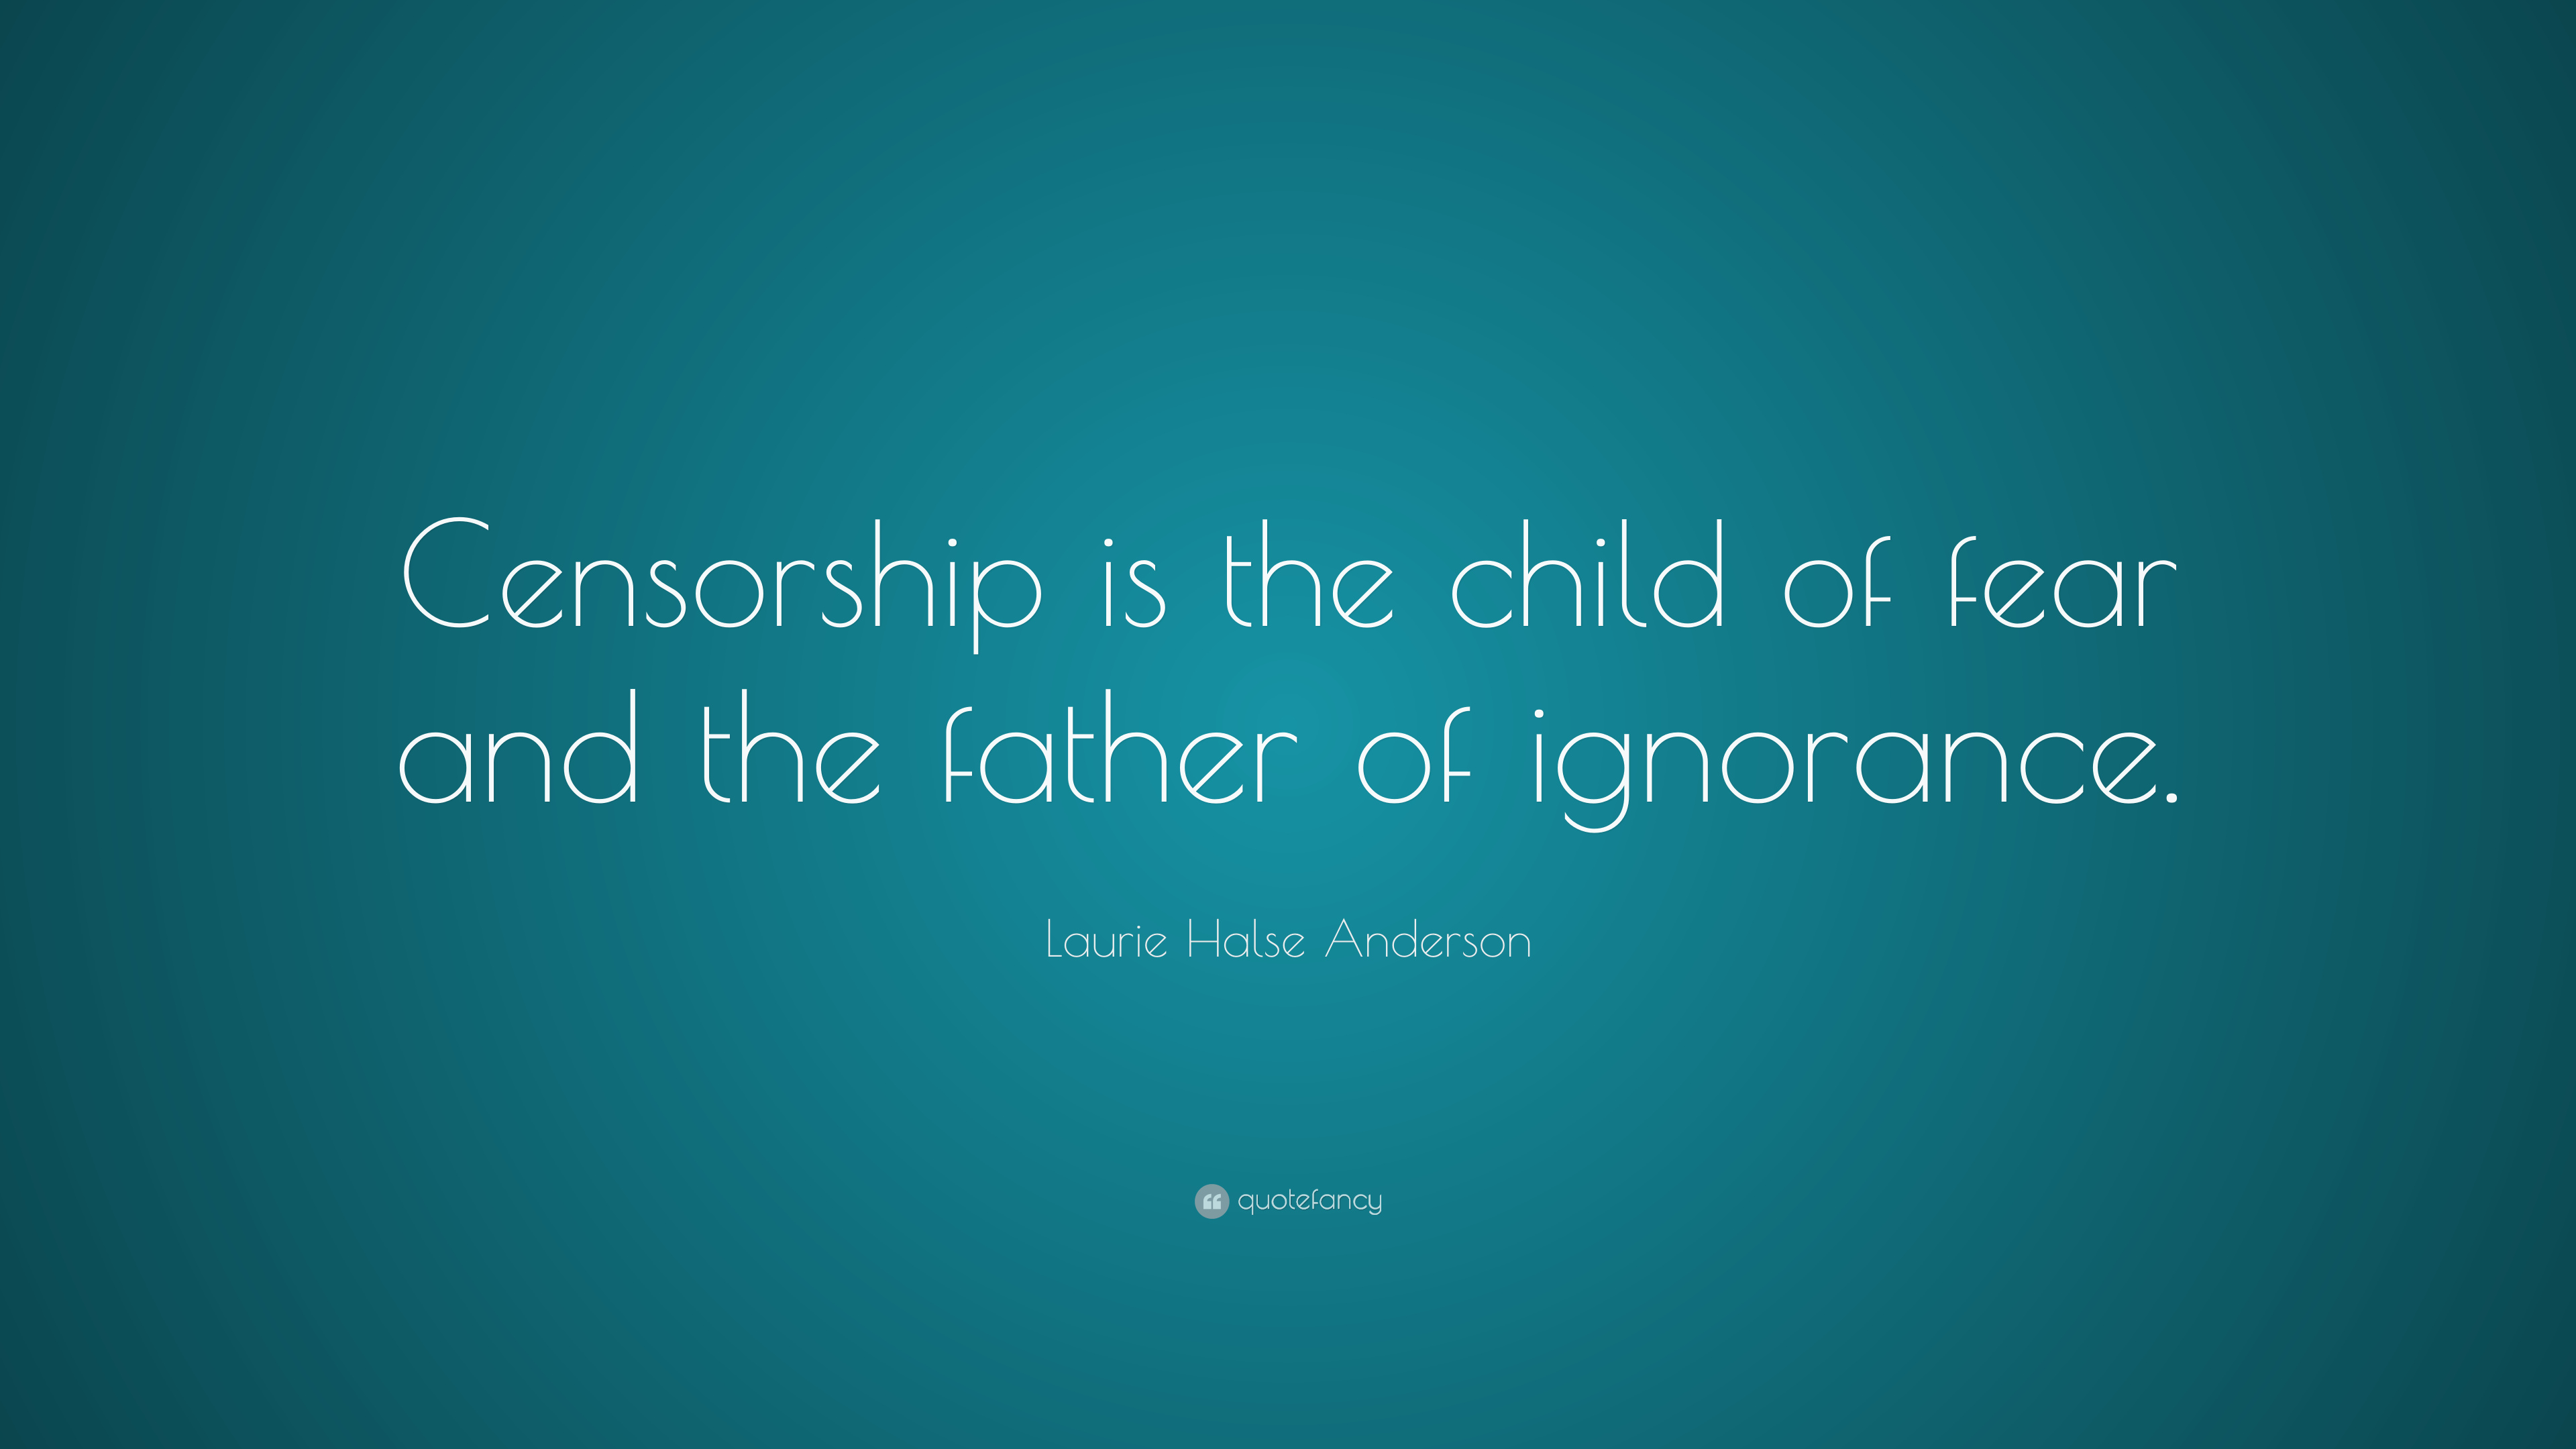 Information warfare - Censorship quote